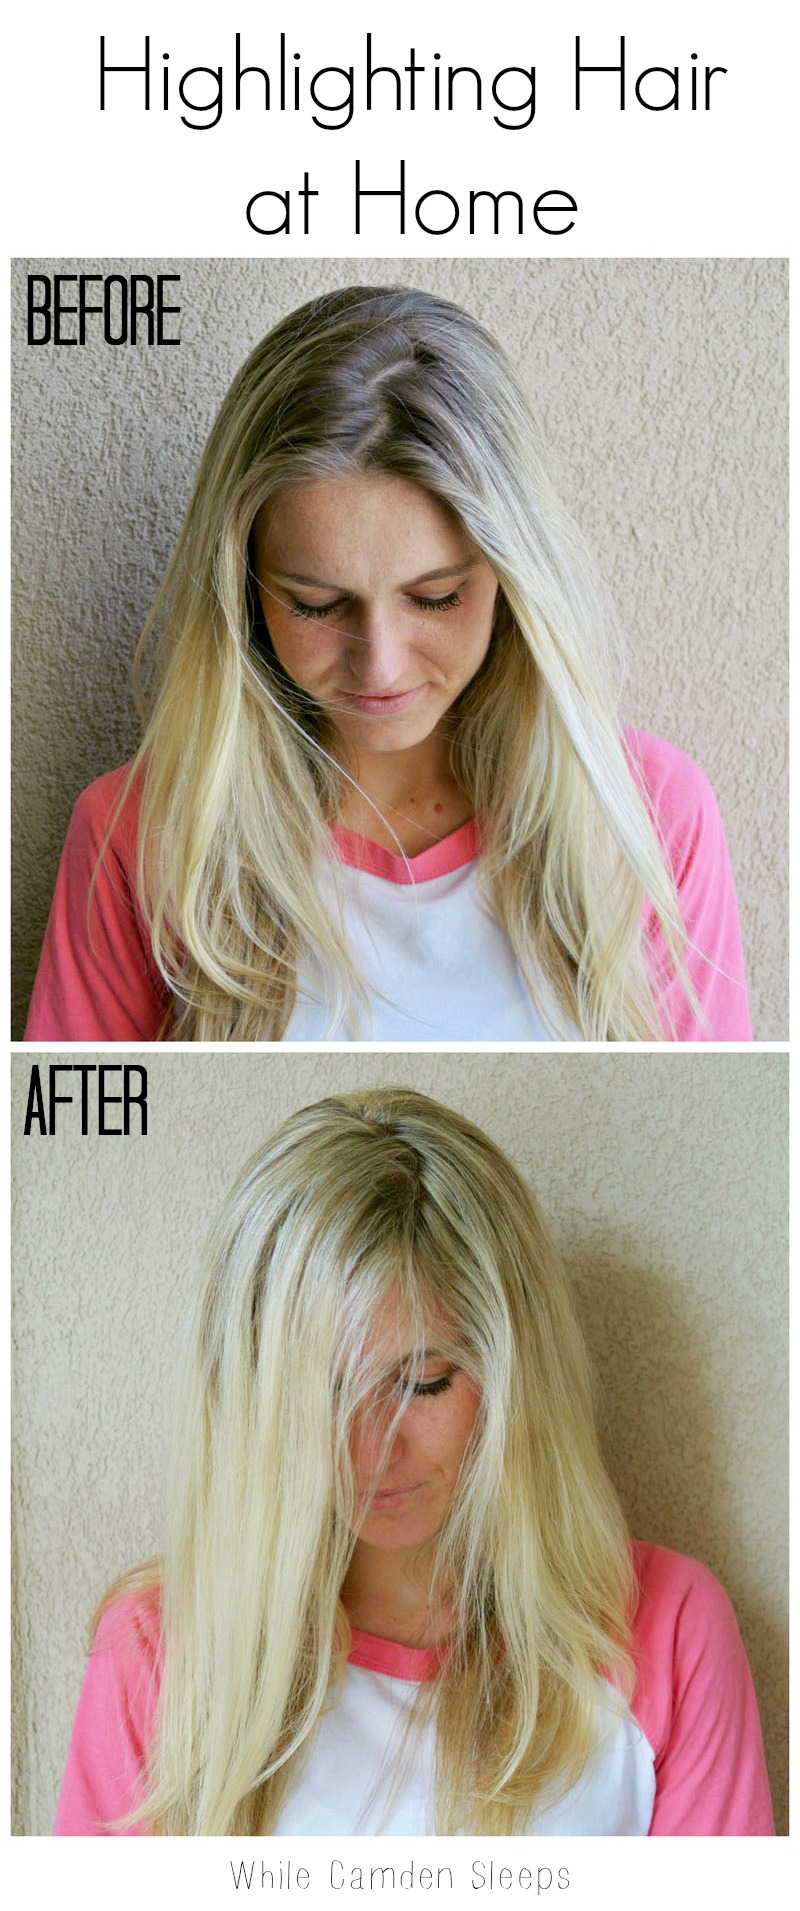 Refashioning....Hair: Highlighting hair at home -